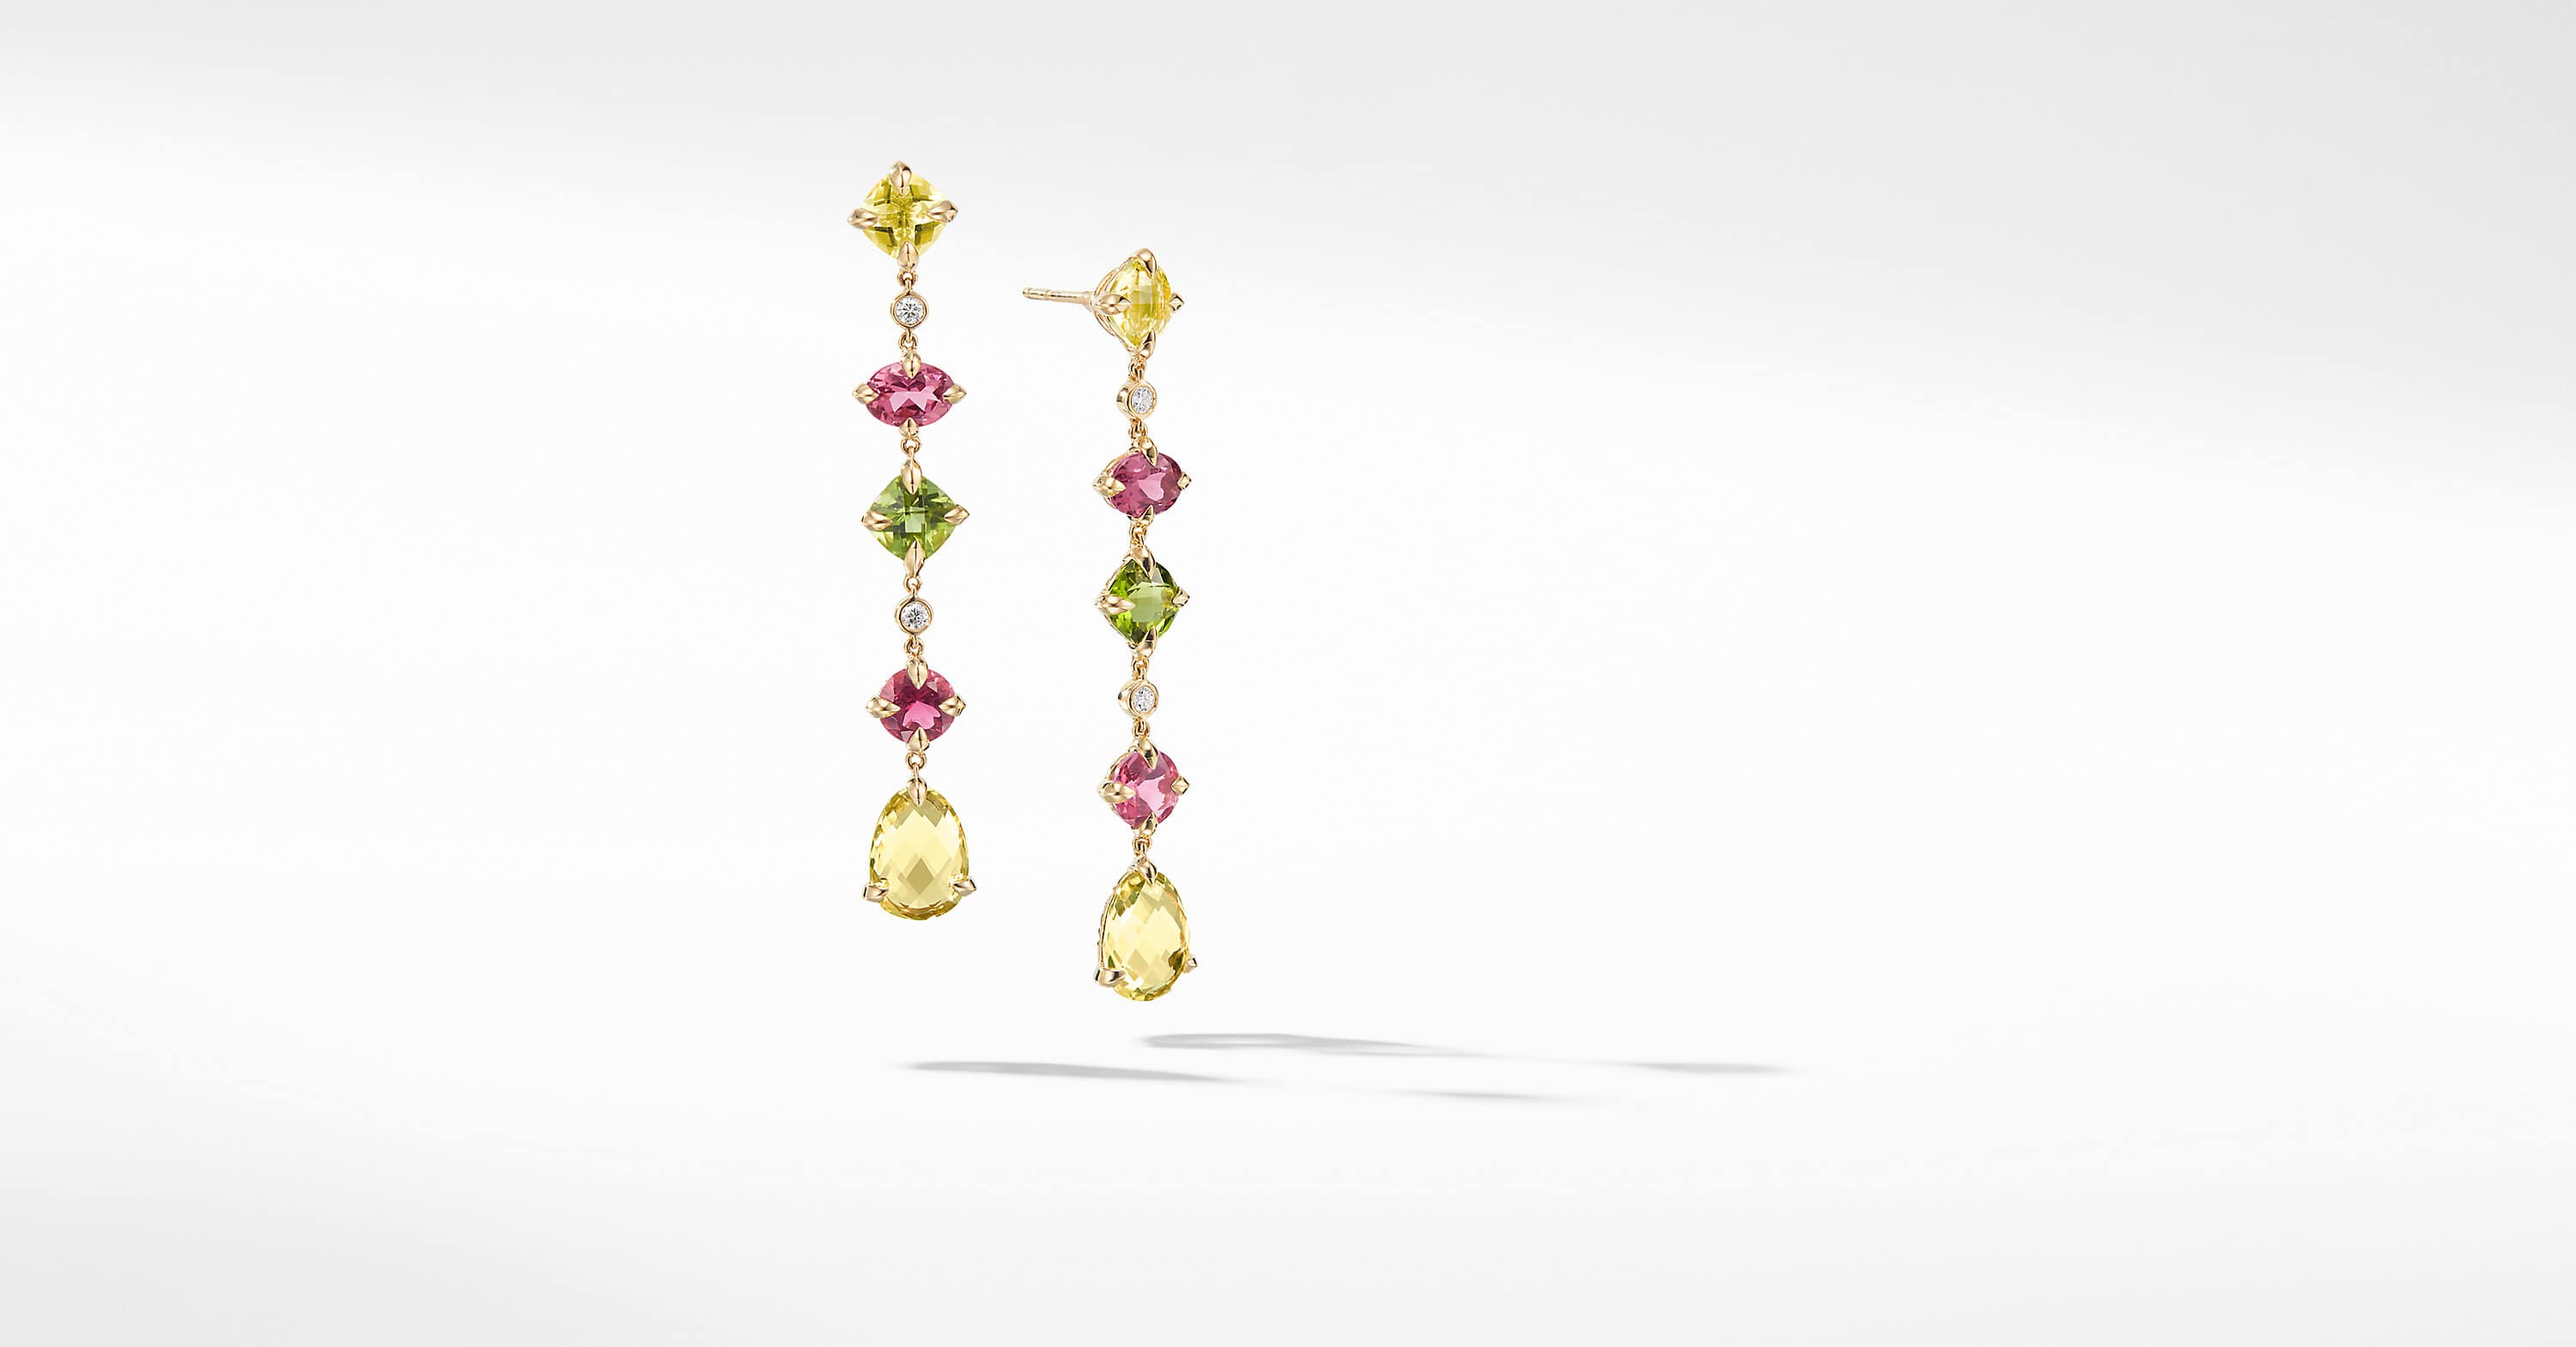 Chatelaine Multi Drop Earrings in 18K Yellow Gold with Diamonds